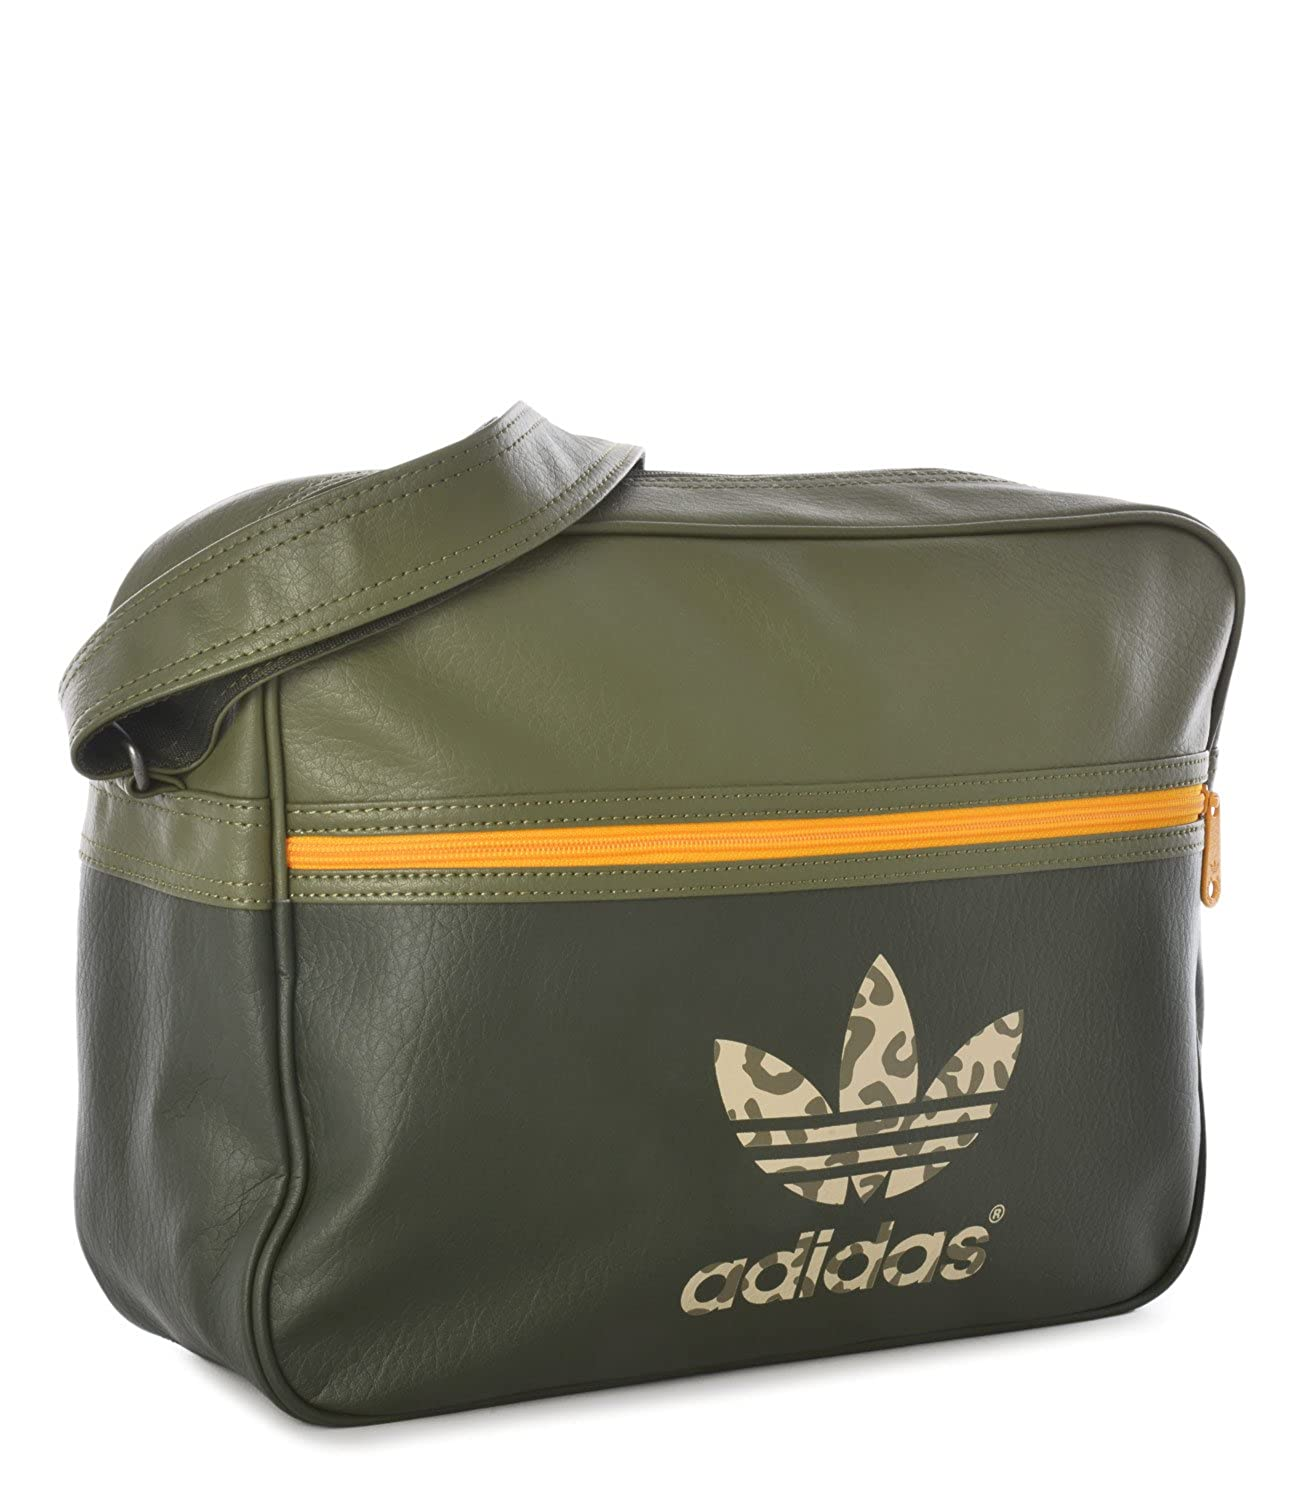 003478a39e Adidas Airliner Bag Classic Street Night Olive Gold  Amazon.co.uk  Clothing